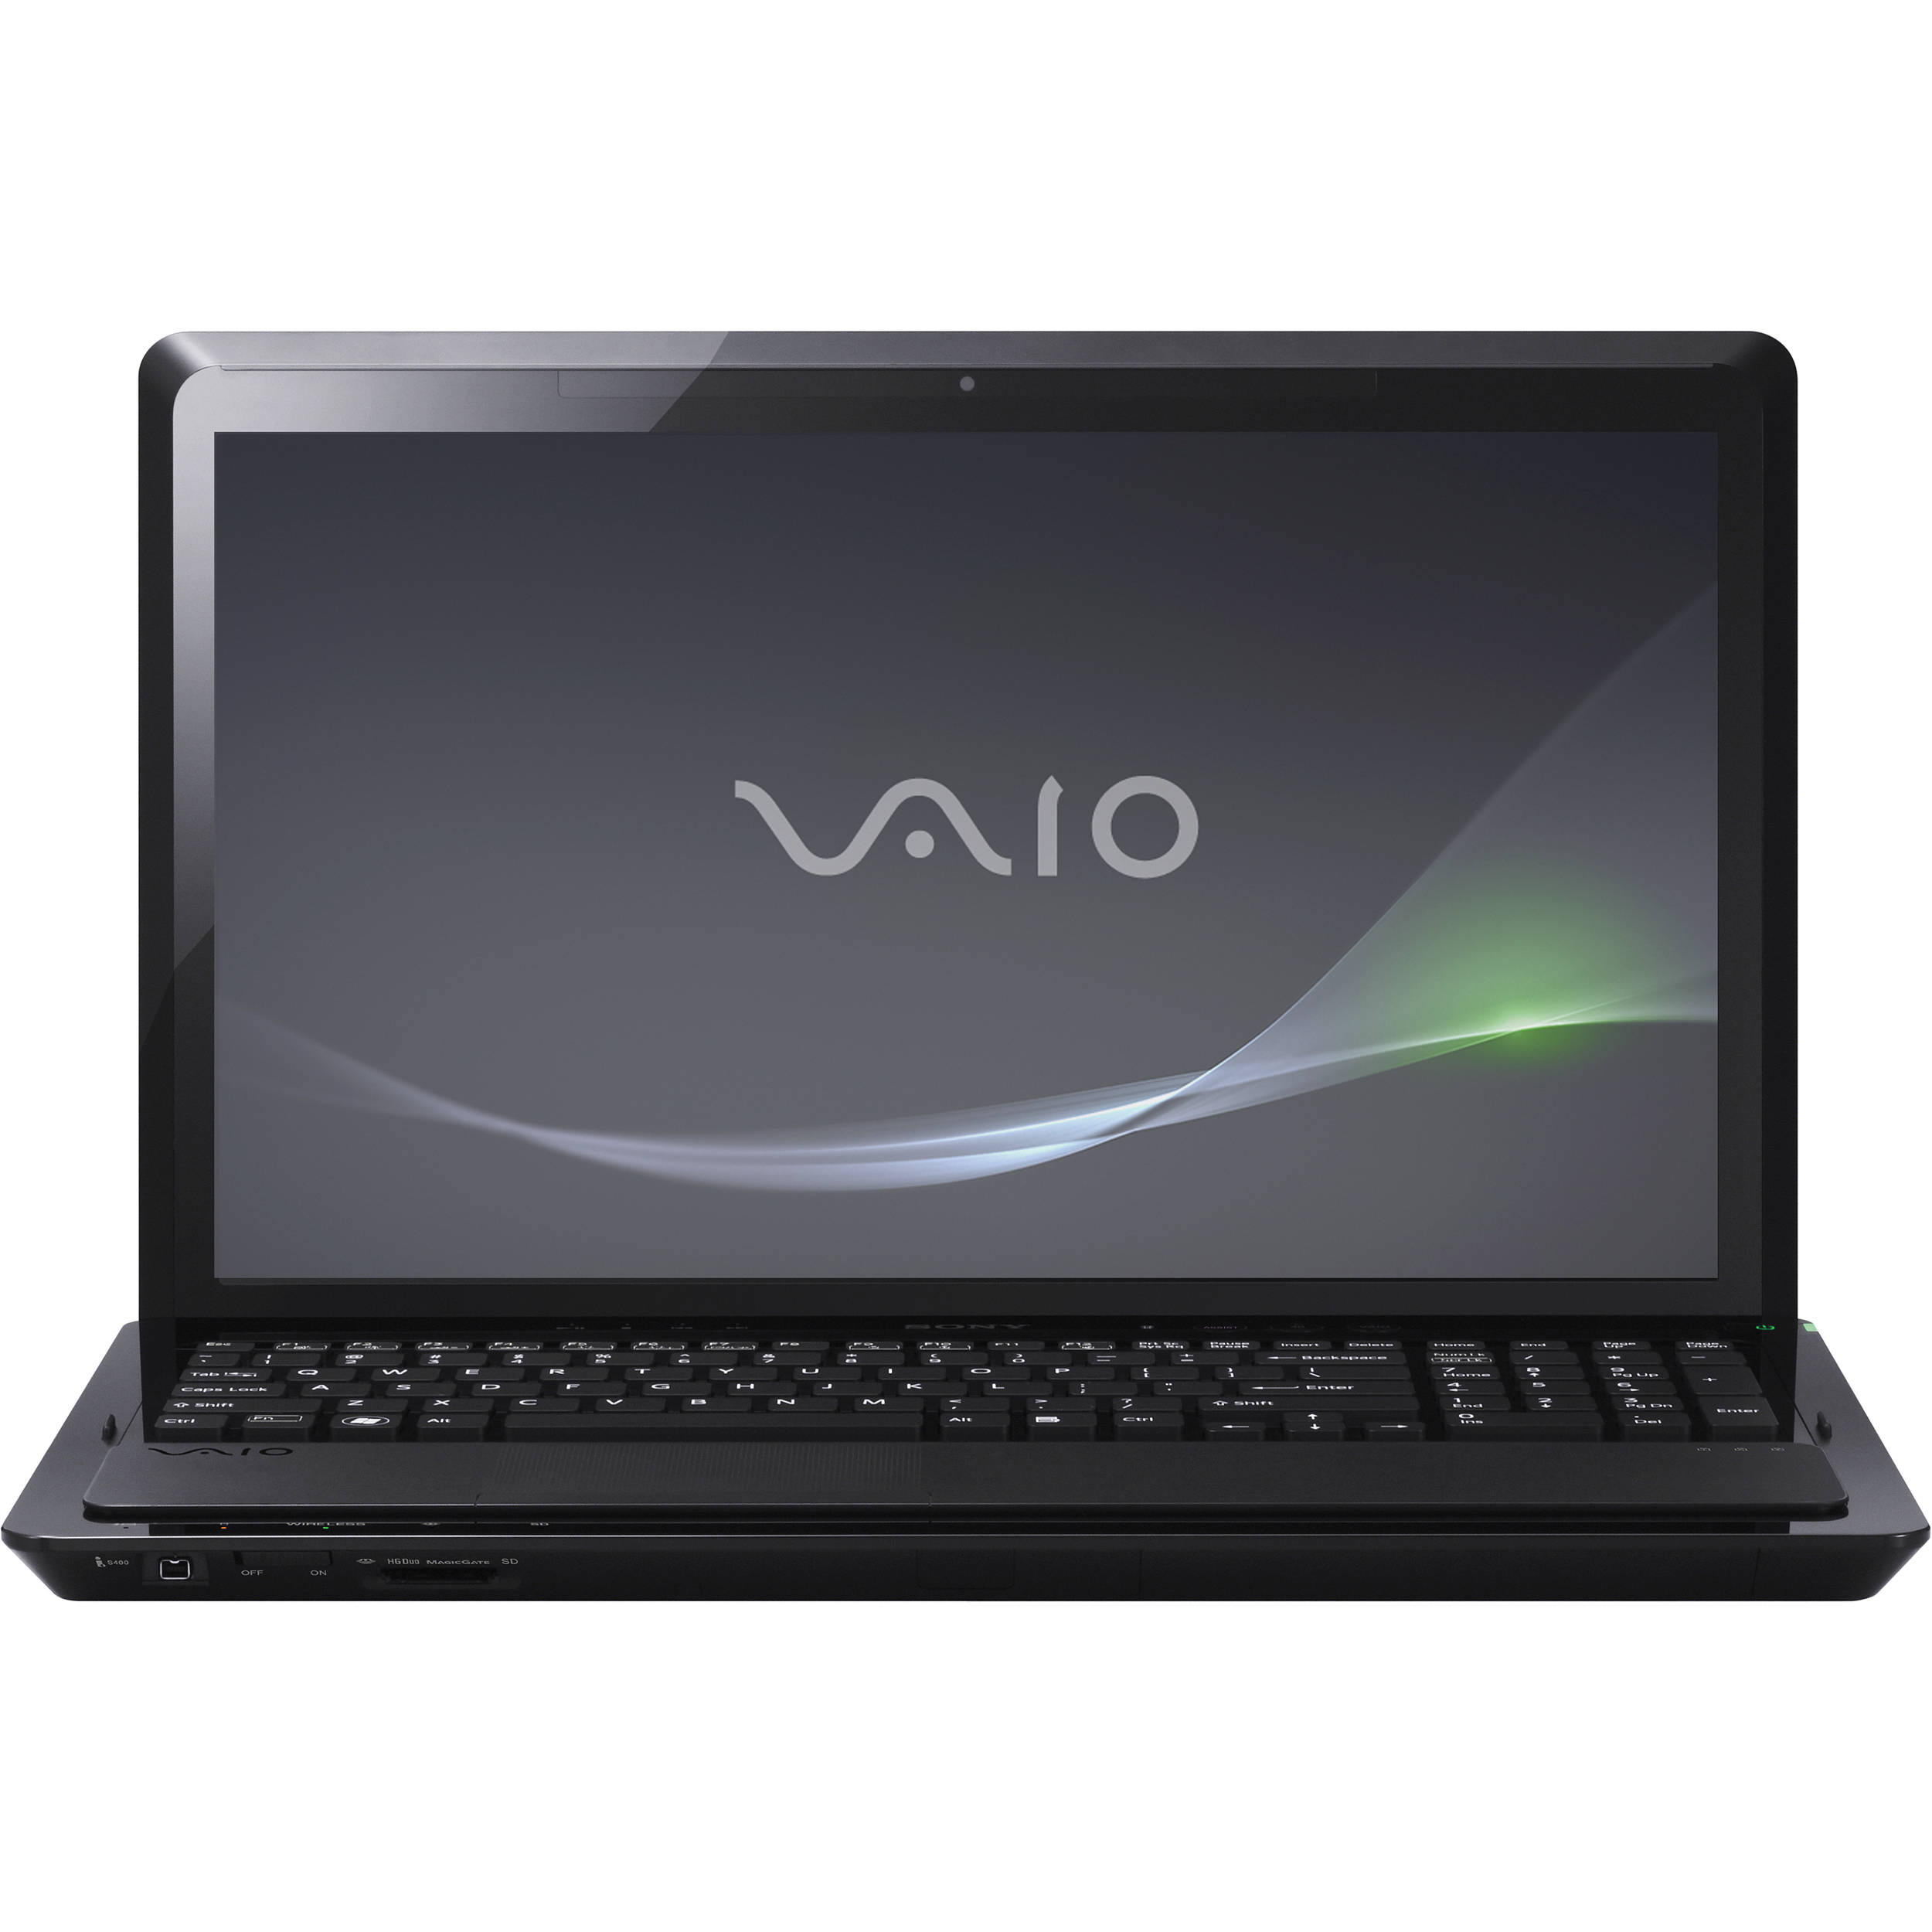 Sony Vaio VPCF227FX Synaptics Pointing Driver Windows